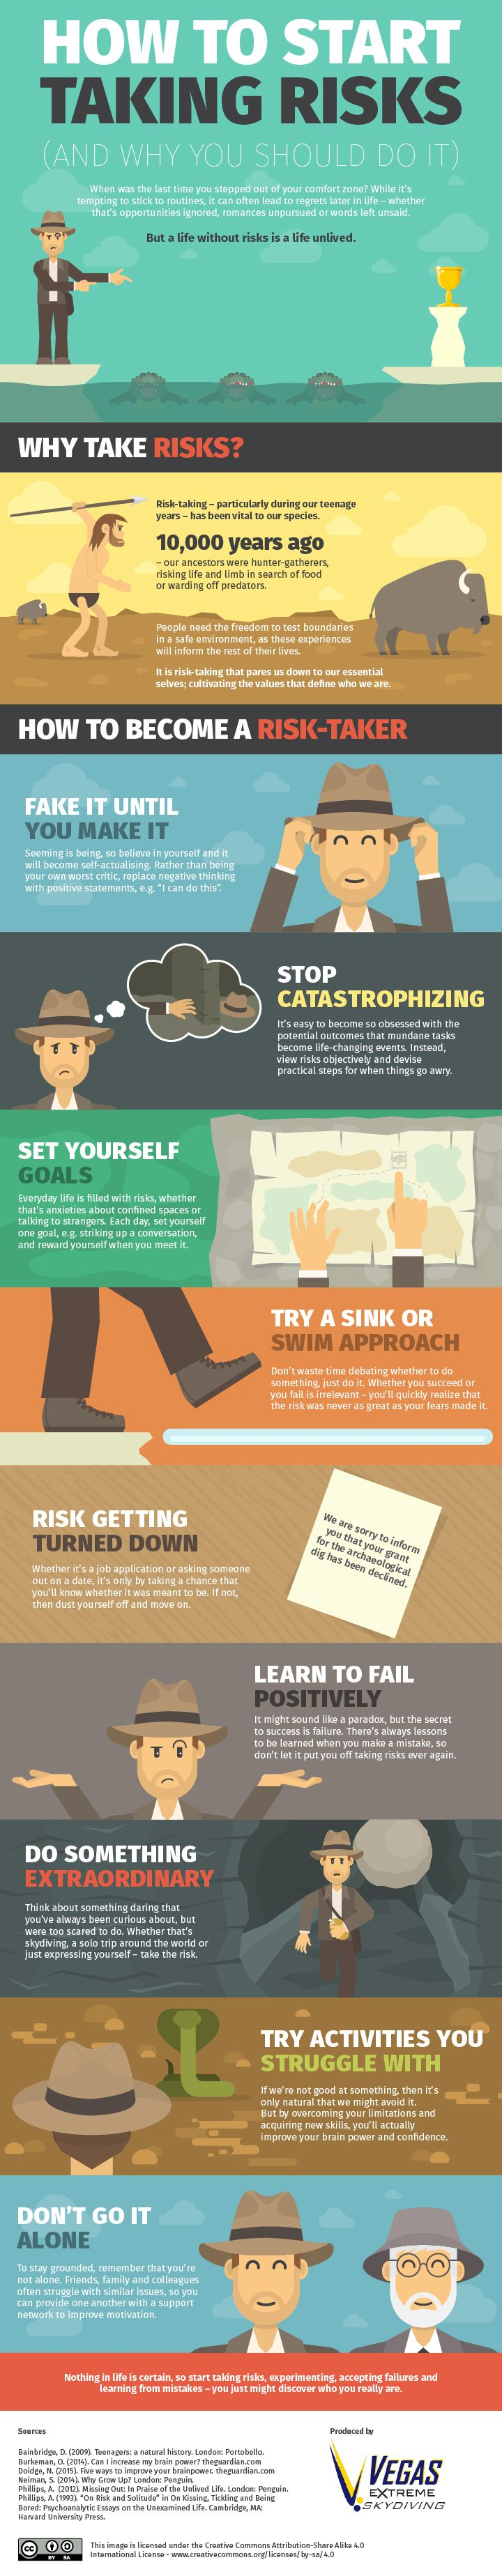 #infographic: Overcoming the Fear of Taking a Risk: Just Do It